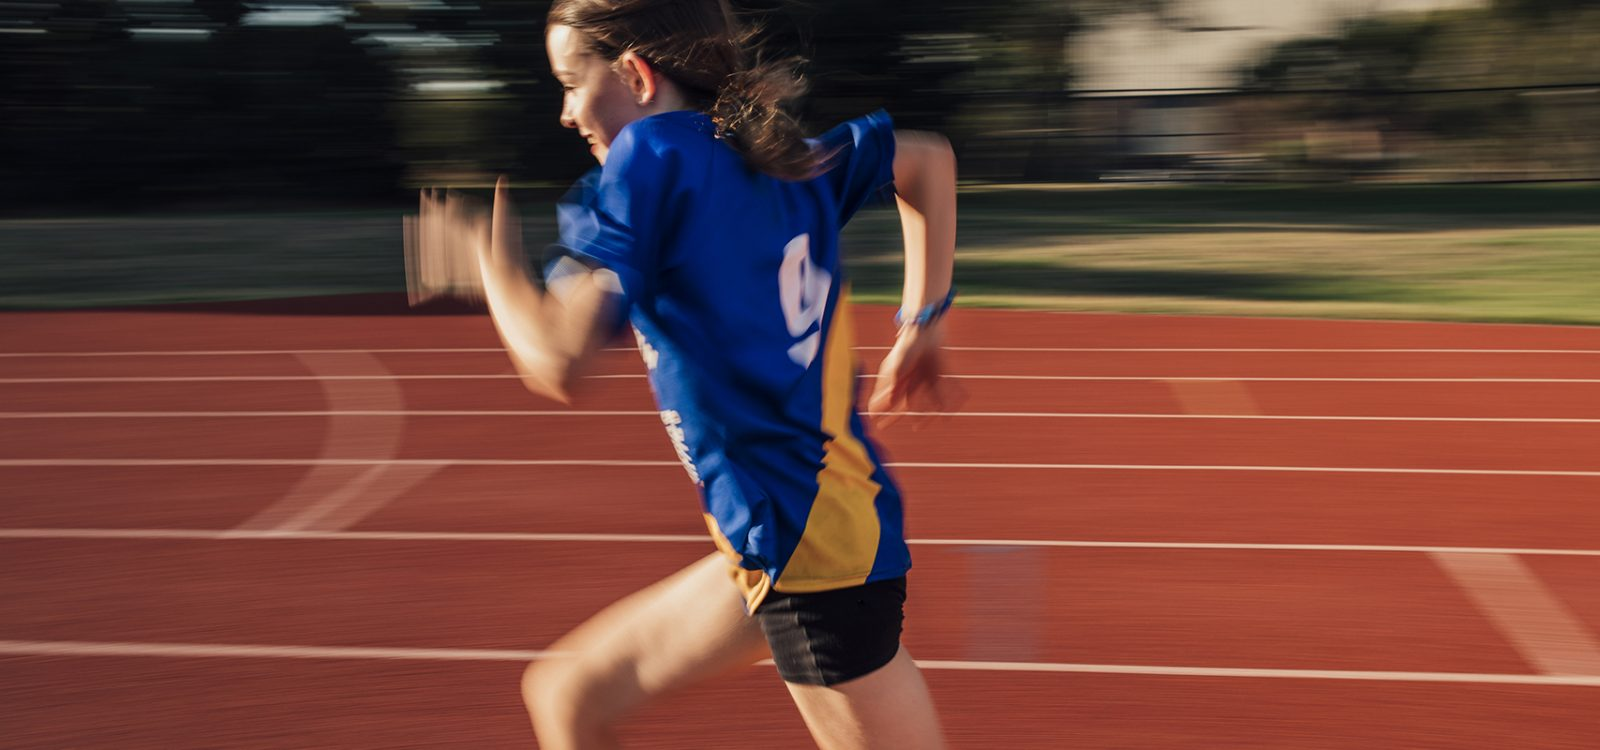 Speed Training At Athletics Club